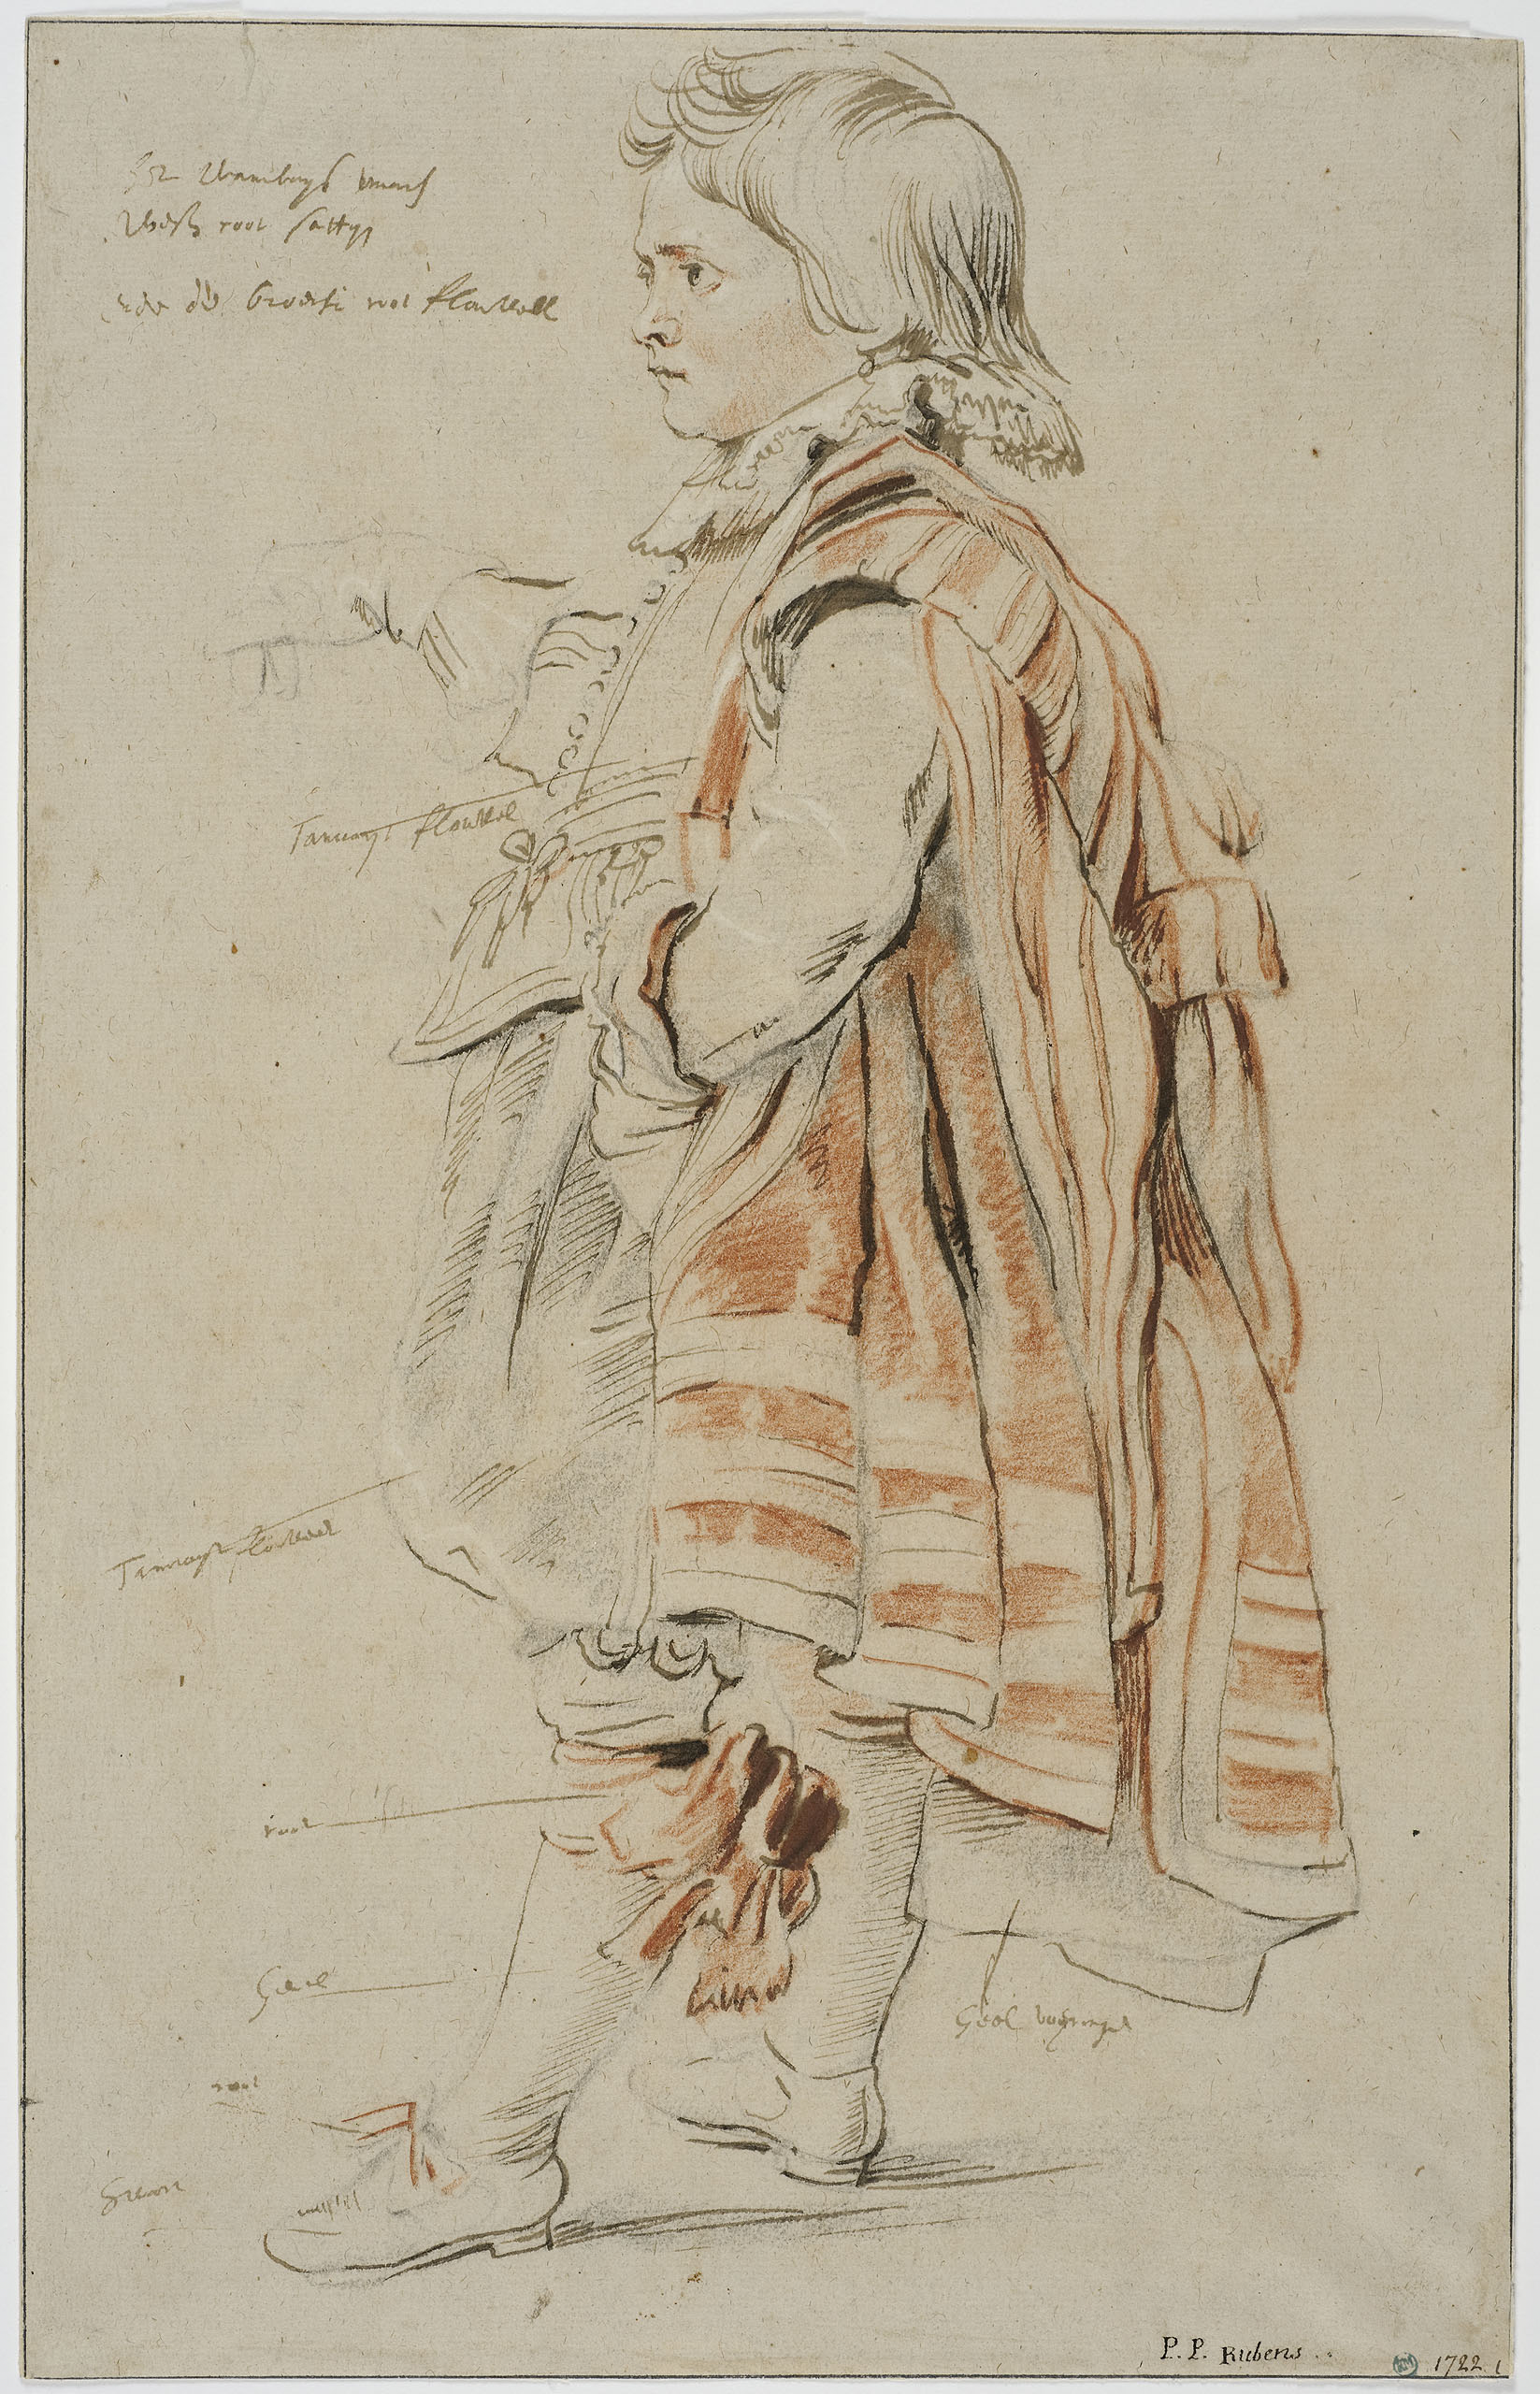 Fig. 6 Peter Paul Rubens (1577-1640), Robin, the Dwarf of the Earl of Arundel, 1620 (inv. no. NMH 1613/1863)